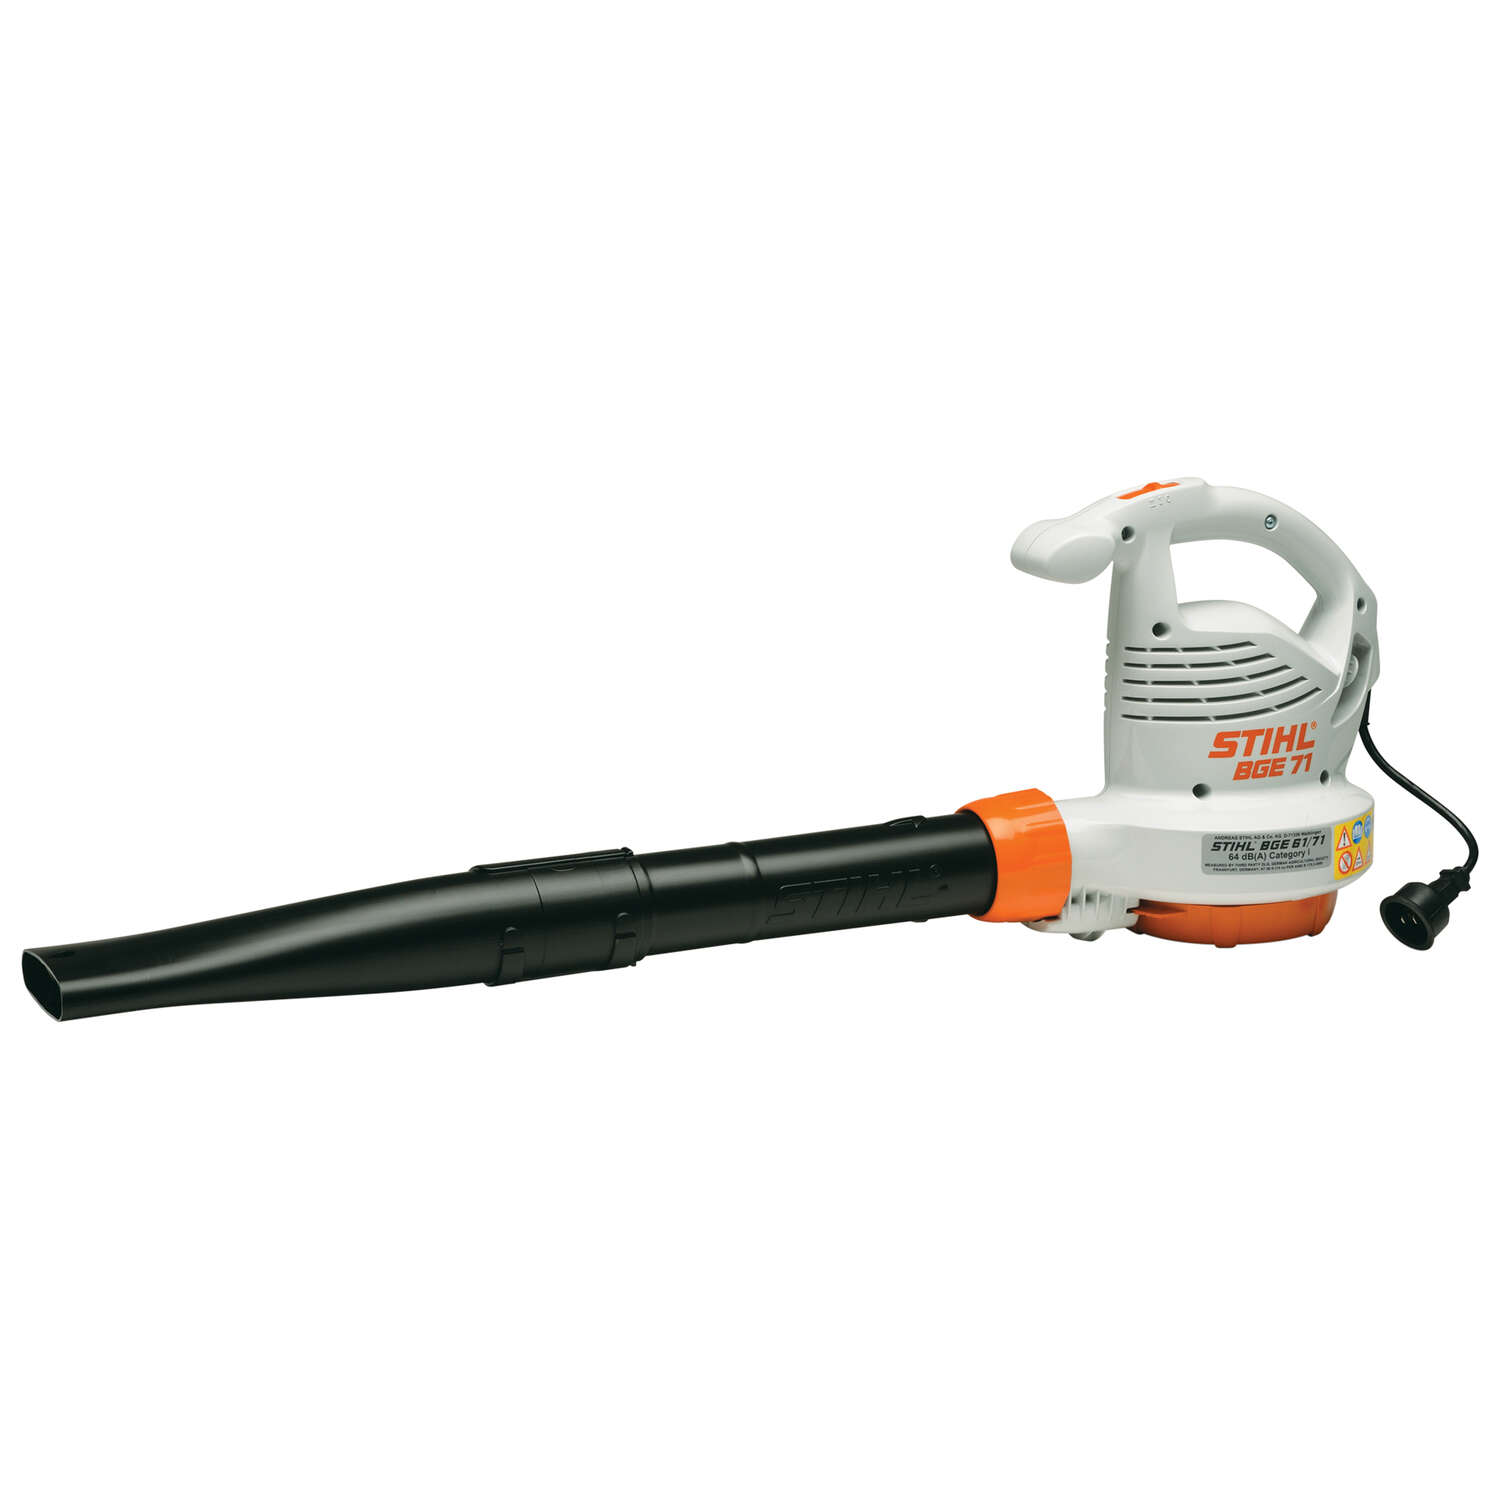 STIHL  BGE 71  Electric  Handheld  Leaf Blower